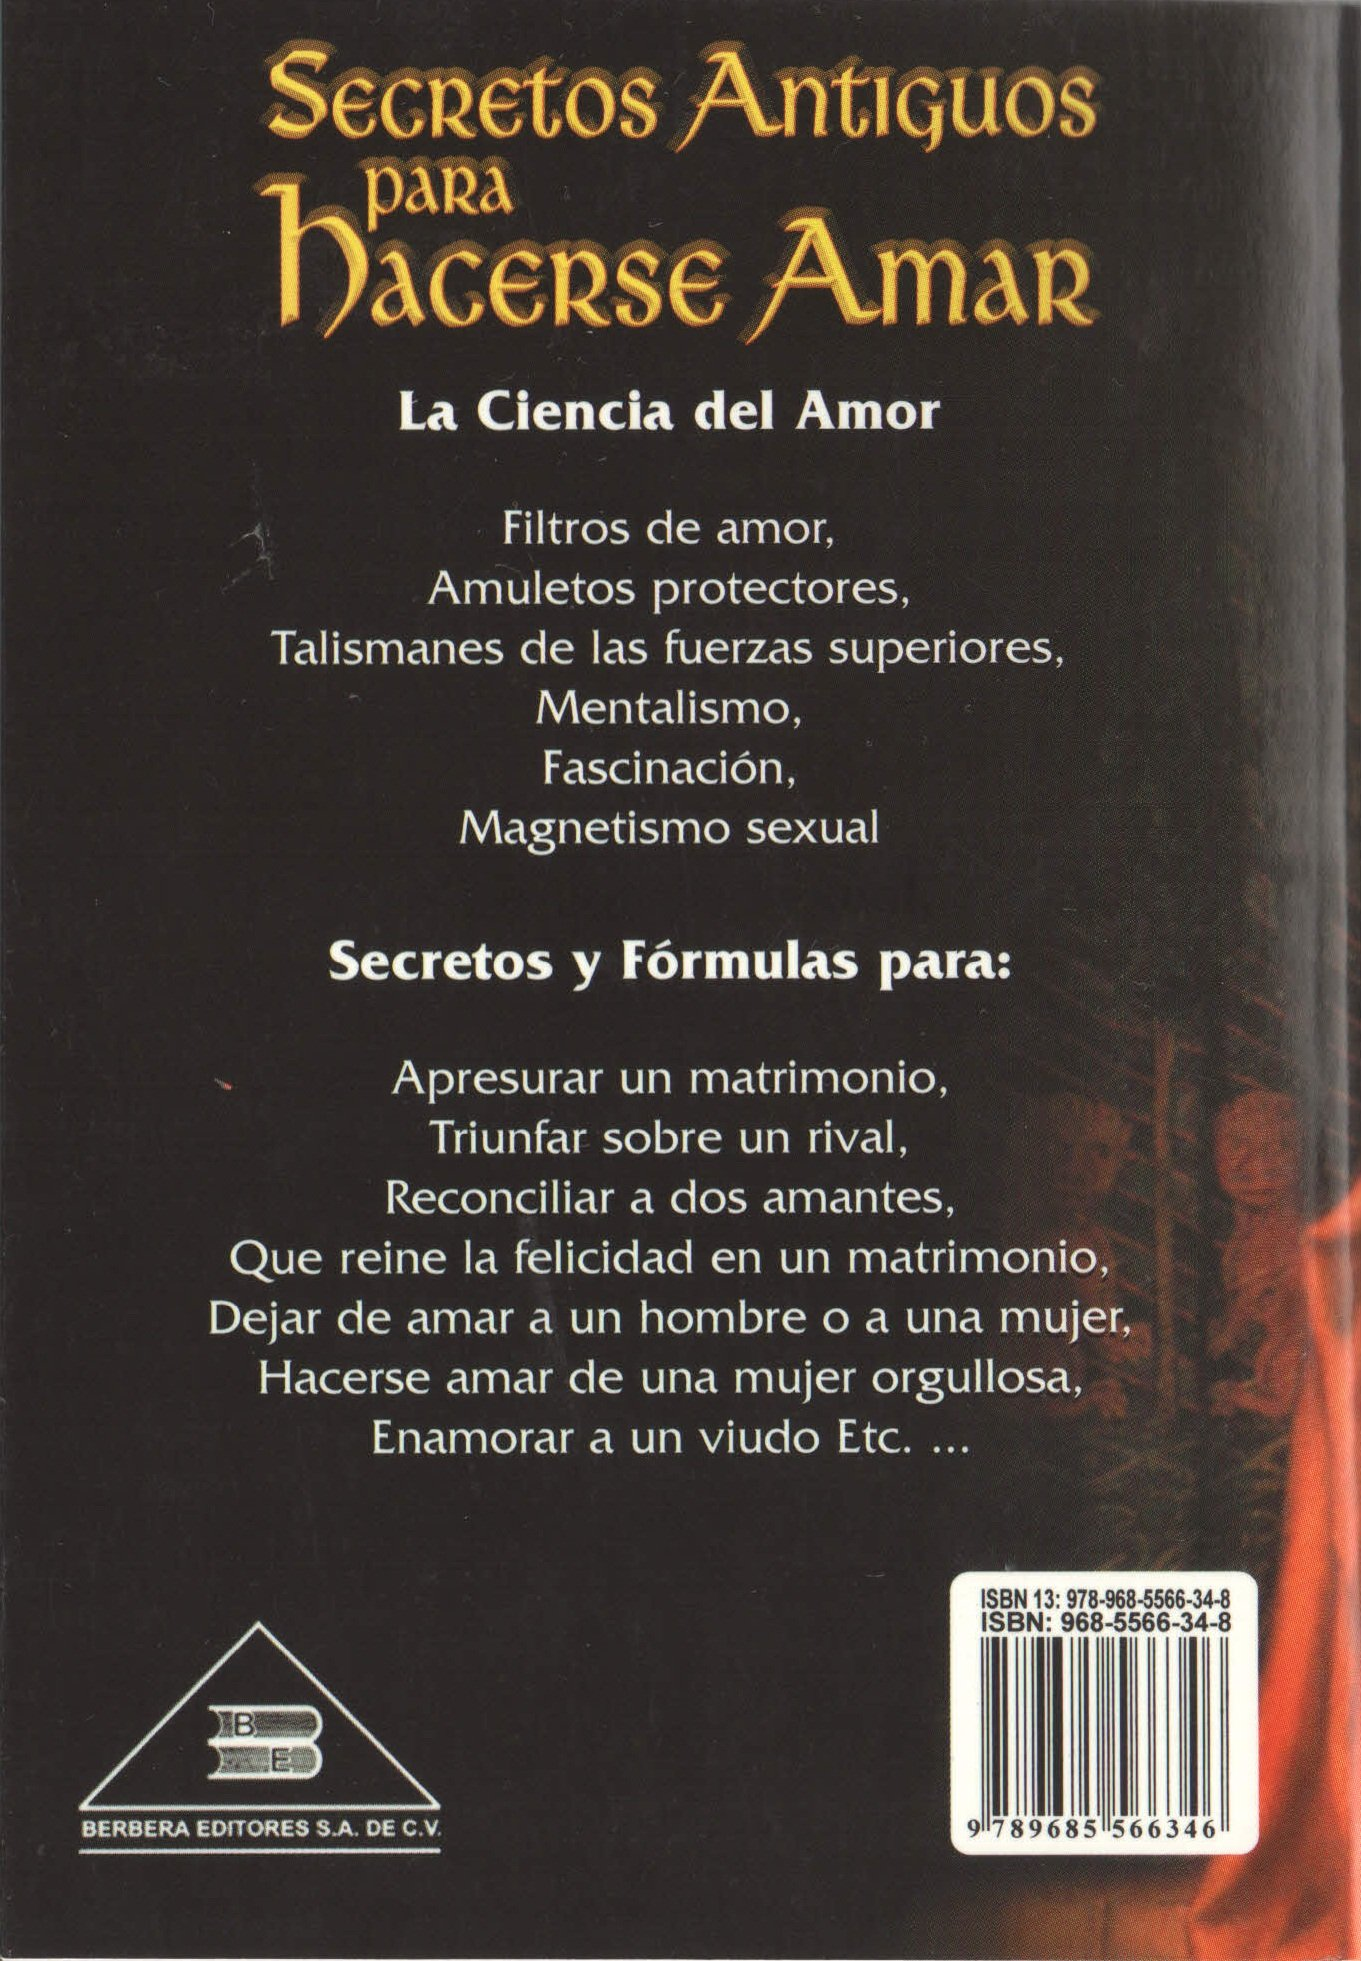 Secretos Antiguos para Hacerse Amar (Spanish Edition): Profesor H. Ridley: 9789685566346: Amazon.com: Books